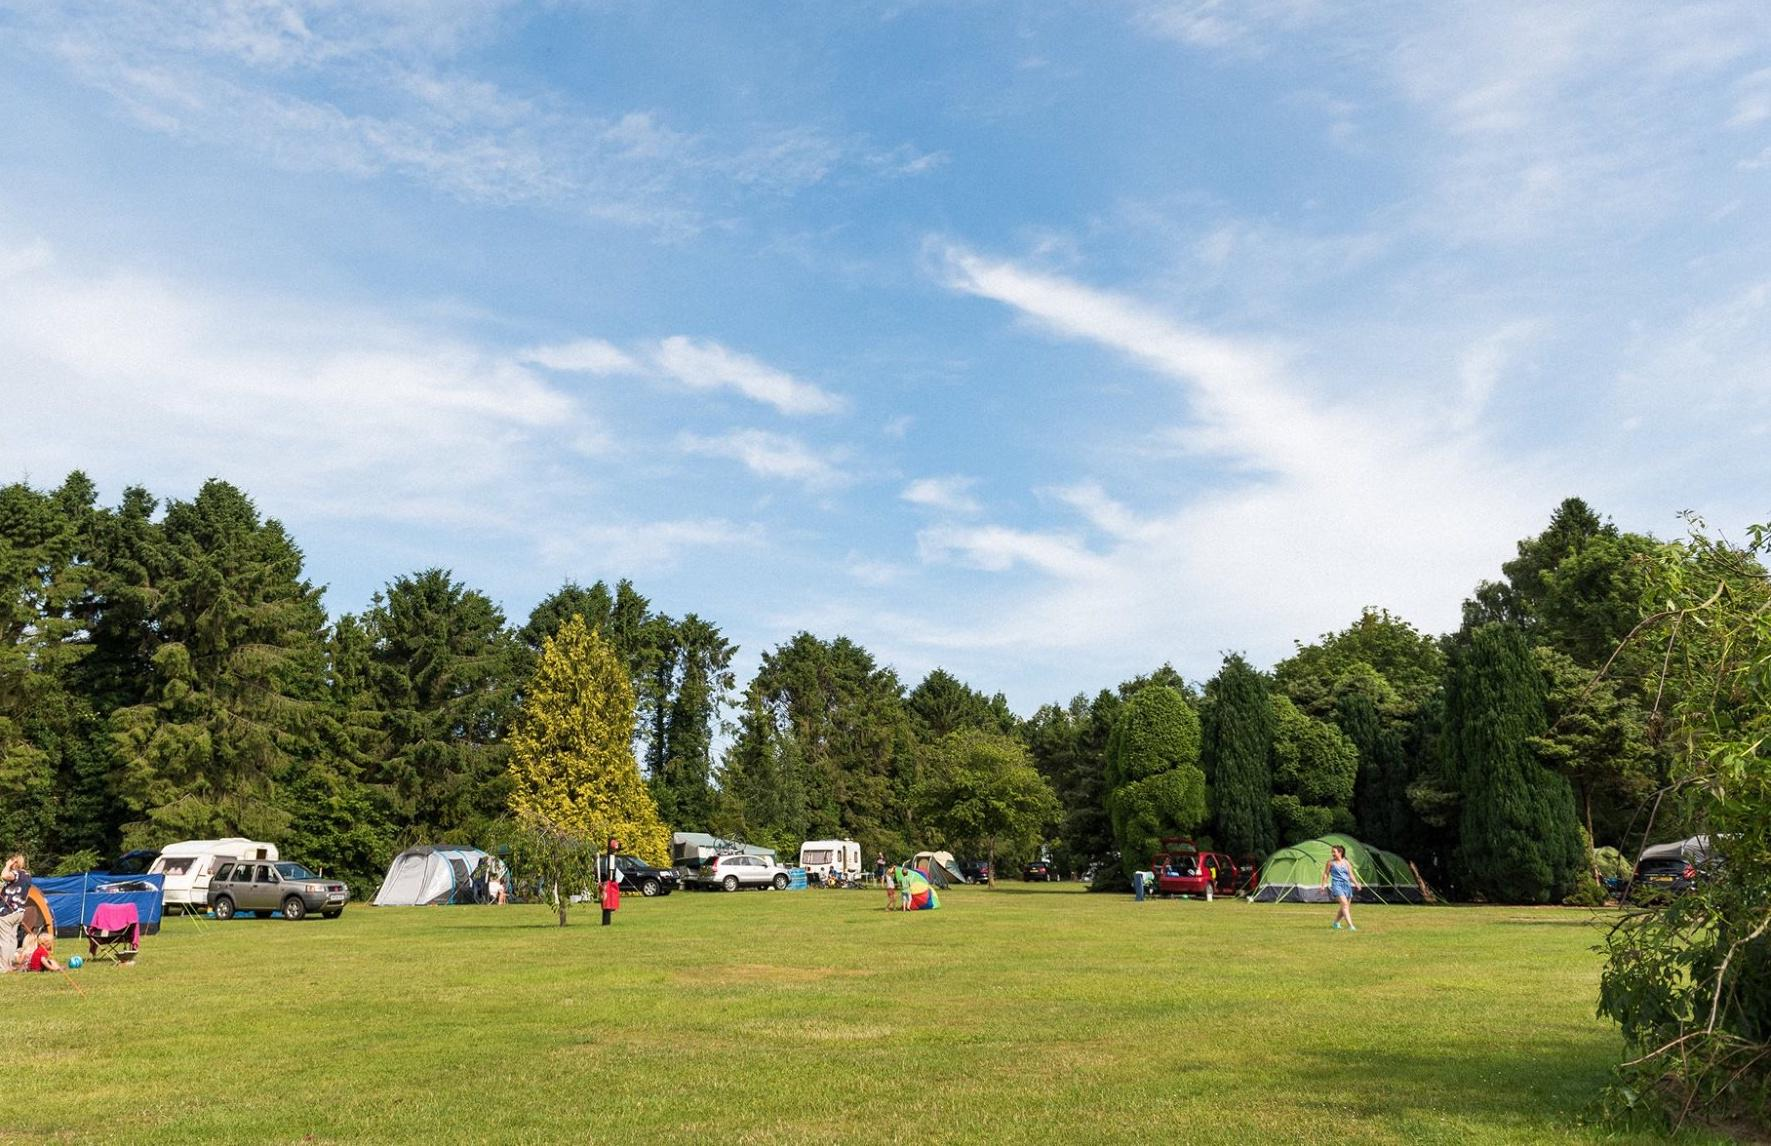 Lowestoft Camping | Campsites near Lowestoft, Suffolk